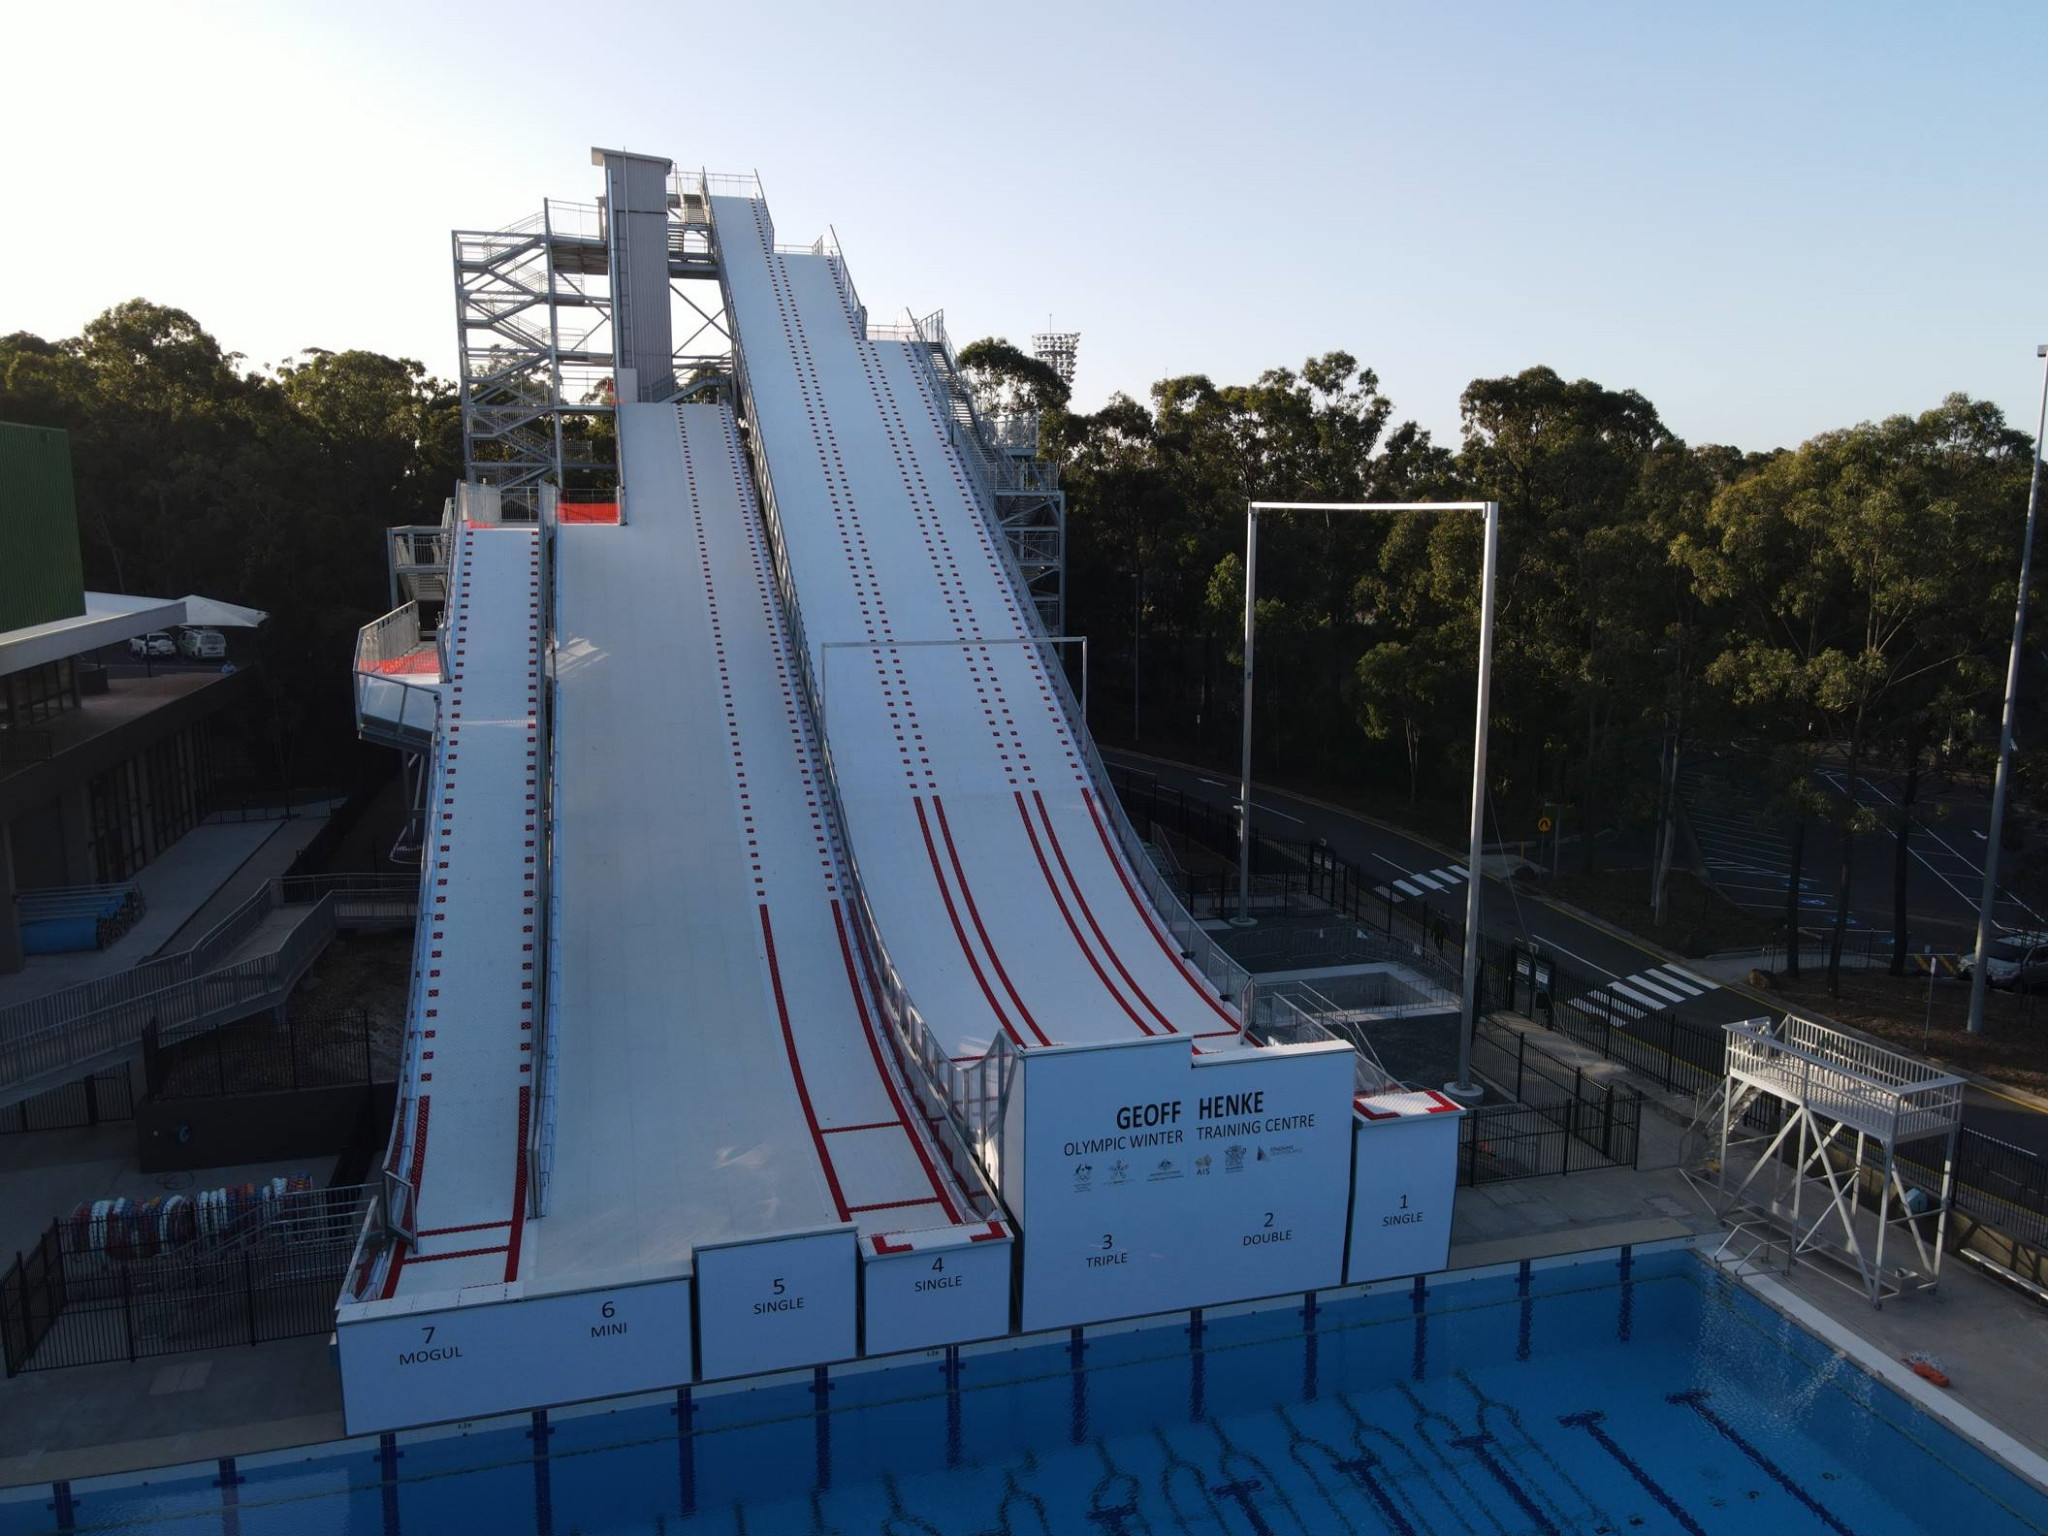 Brisbane is the home of Australia's new Olympic Winter Training Centre ©AOC